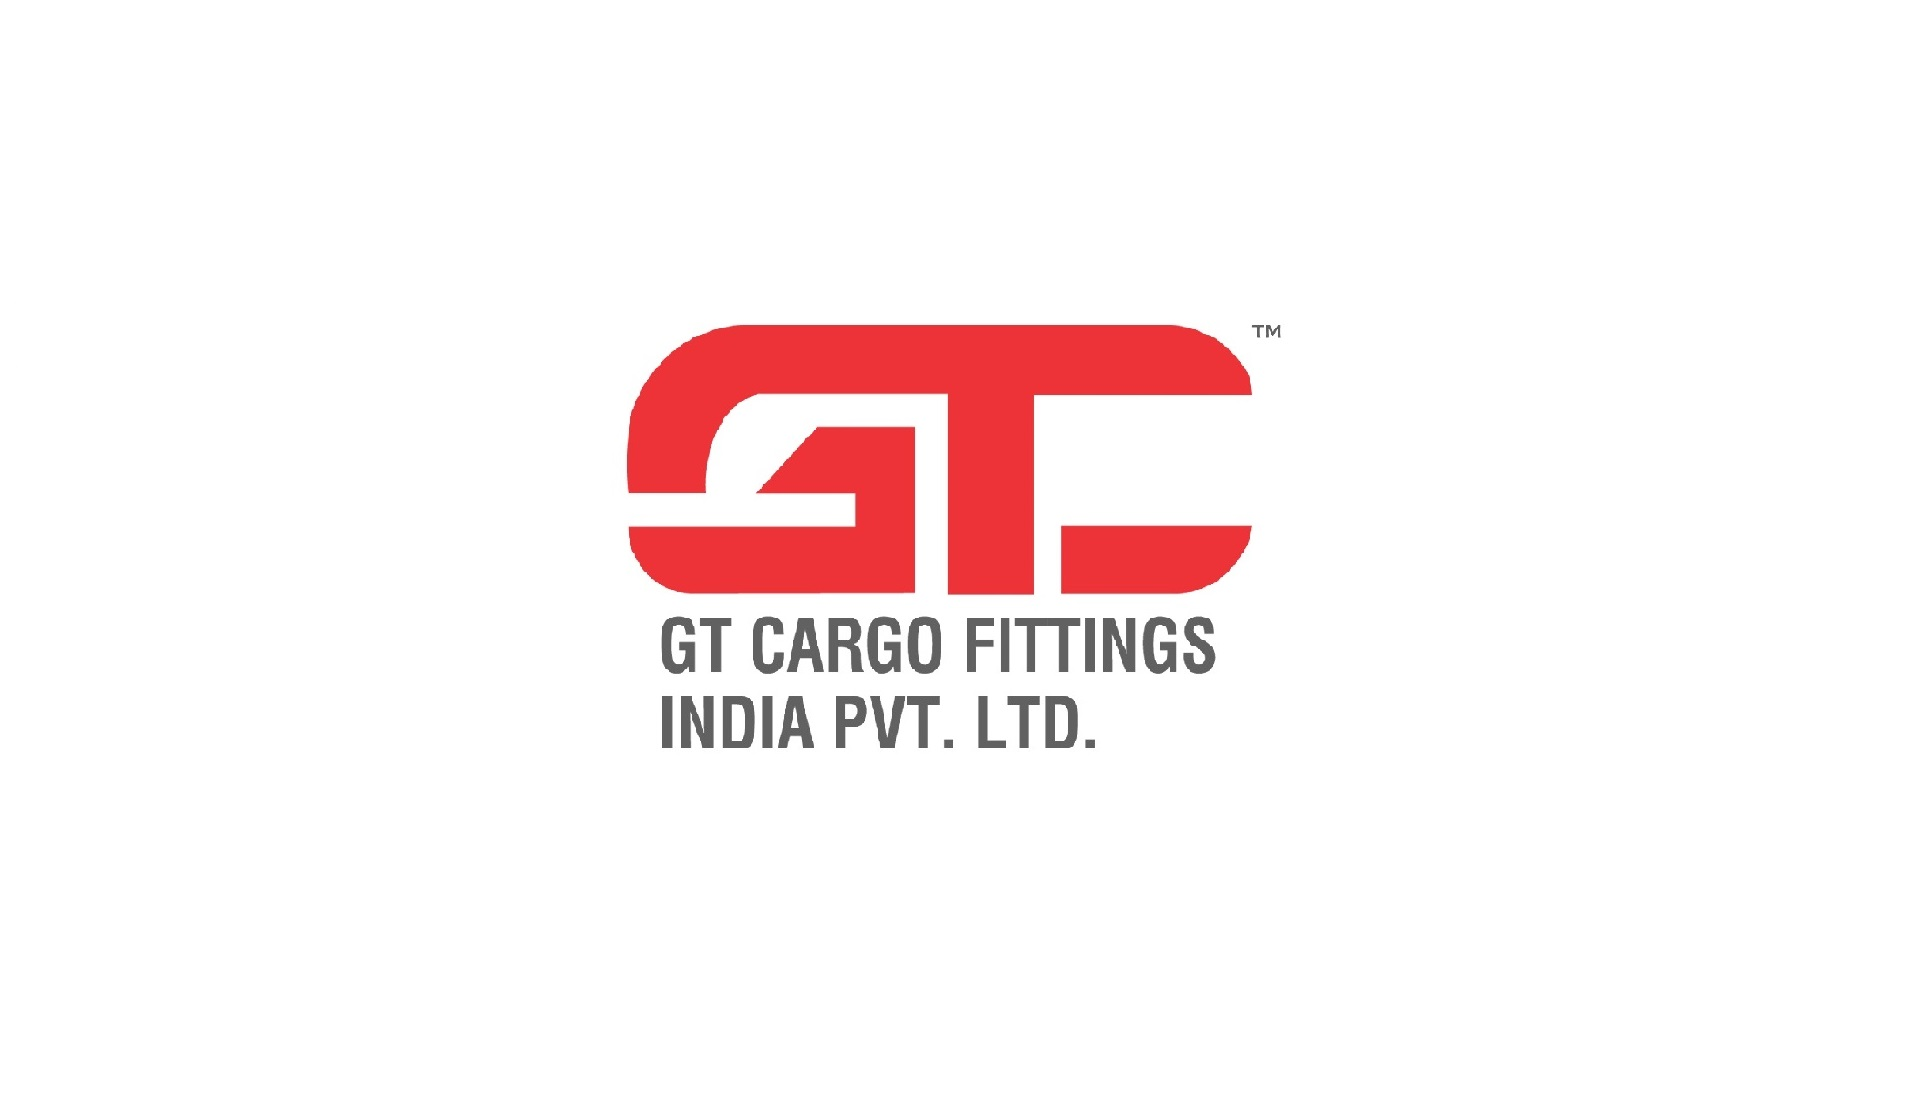 Cargo and Fitting Leading Wire HOOKS Manufacturer – GTCFI